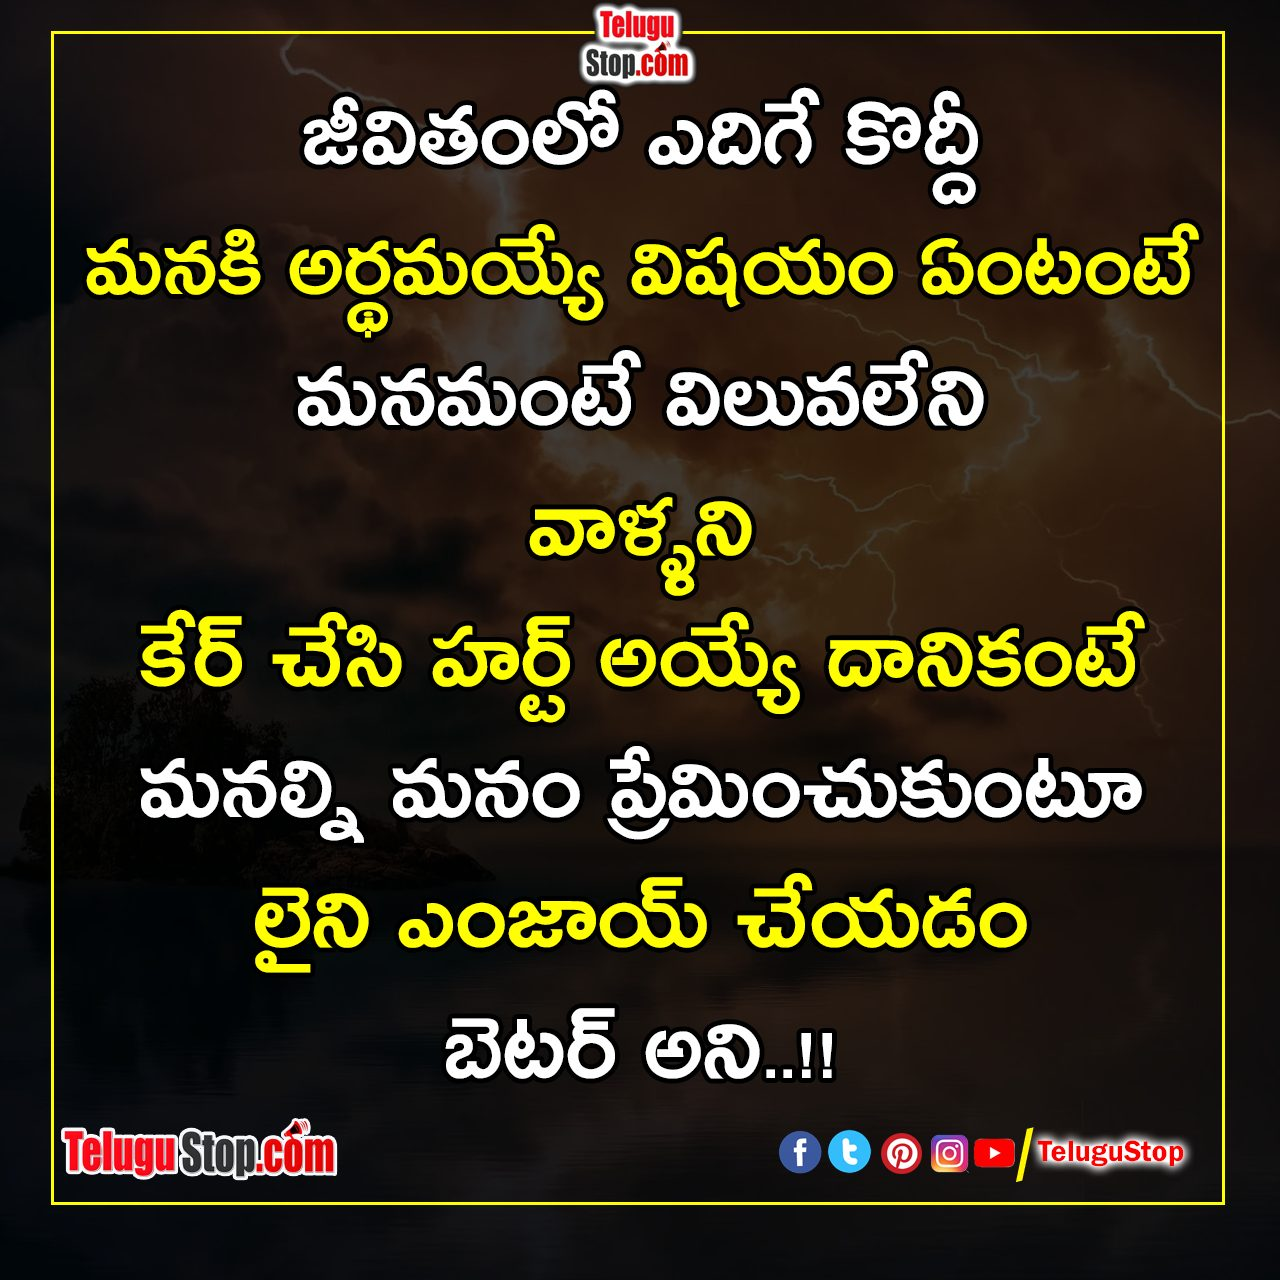 Telugu Believe It Or Not Came Back Inspirational Quotes, Do Not Be Arrogant Inspiriational Quotes, Grows Up In Life Inspirational Quotes, Replace Torn Notes Related Inspiraitonal Quotes-Telugu Daily Quotes - Inspirational/Motivational/Love/Friendship/Good Morning Quote